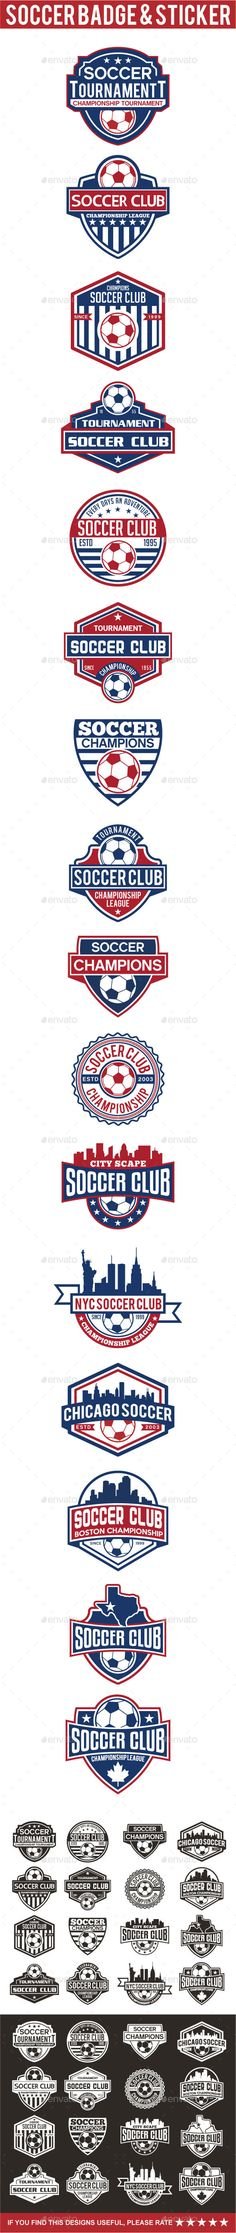 Soccer Badge & Sticker Template Vector EPS, AI. Download here: http://graphicriver.net/item/soccer-badge-sticker/15418441?ref=ksioks